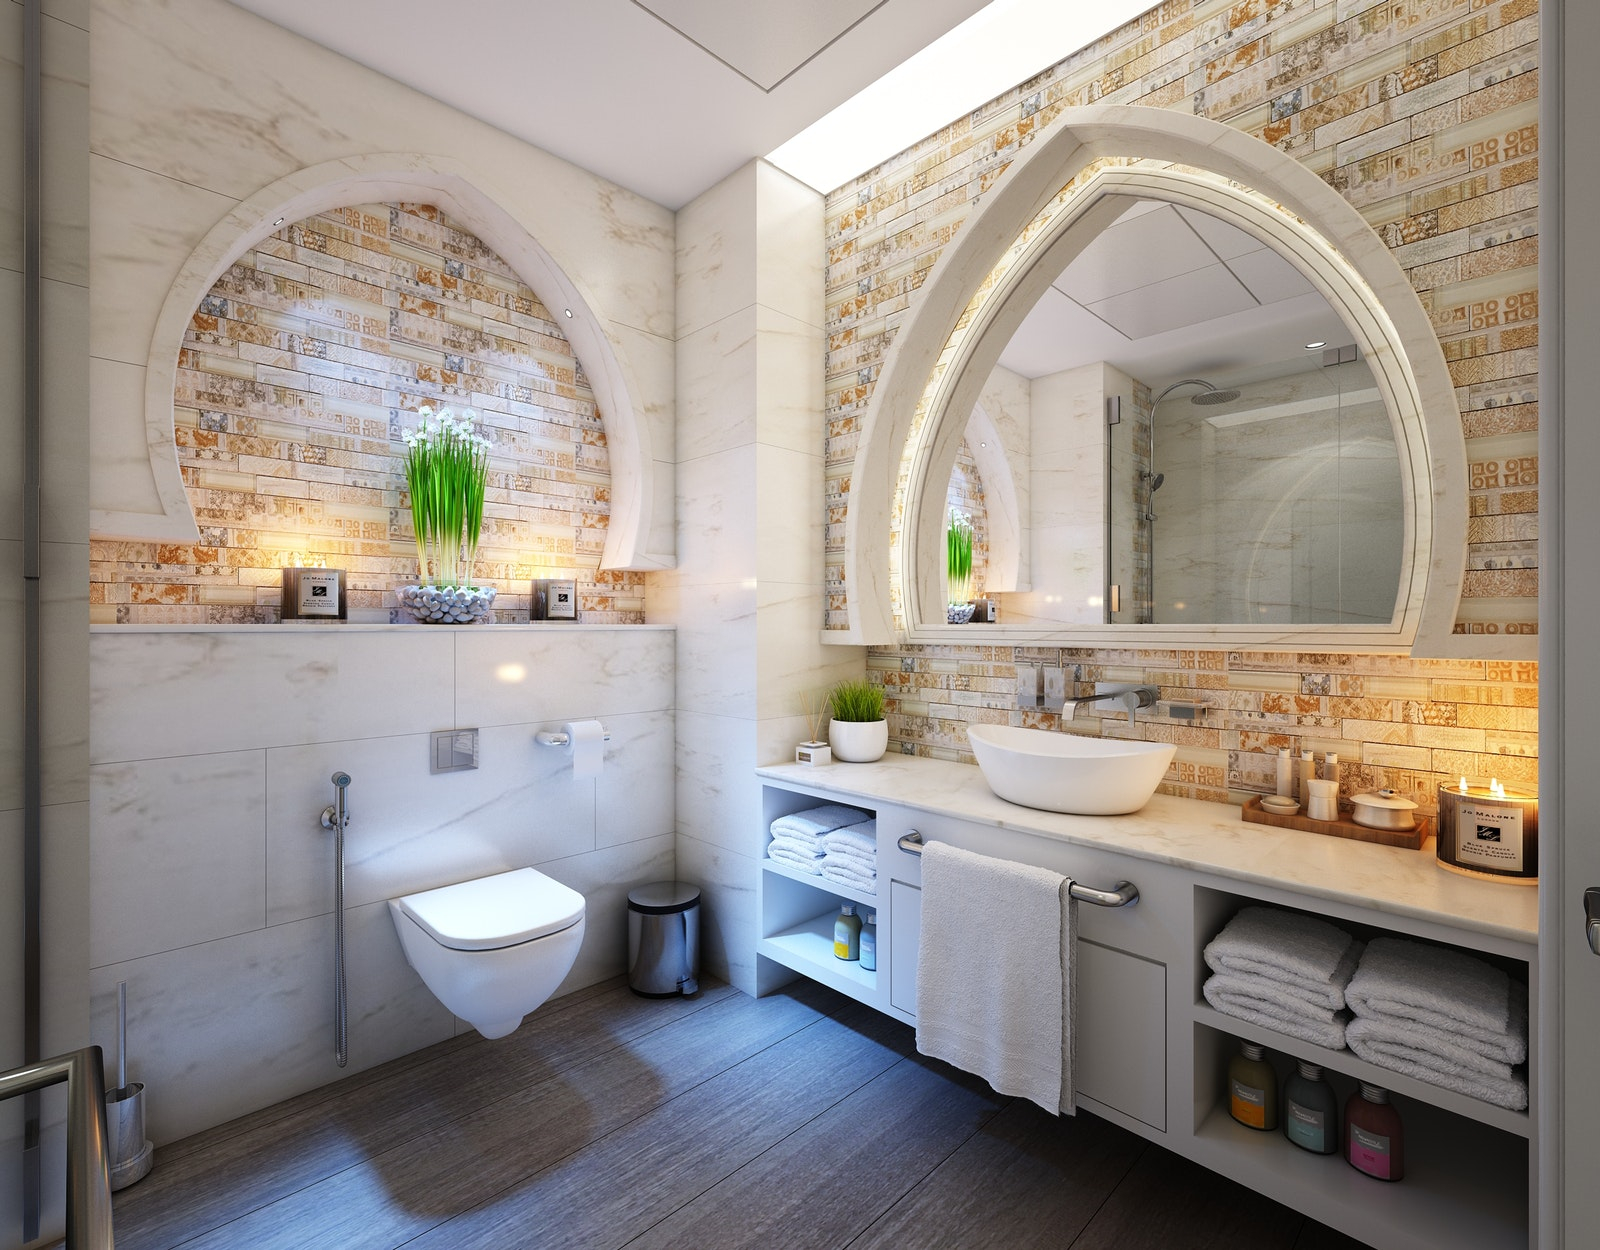 18 Alluring Ways To Organize A Bathroom Without Drawers And with measurements 1600 X 1250